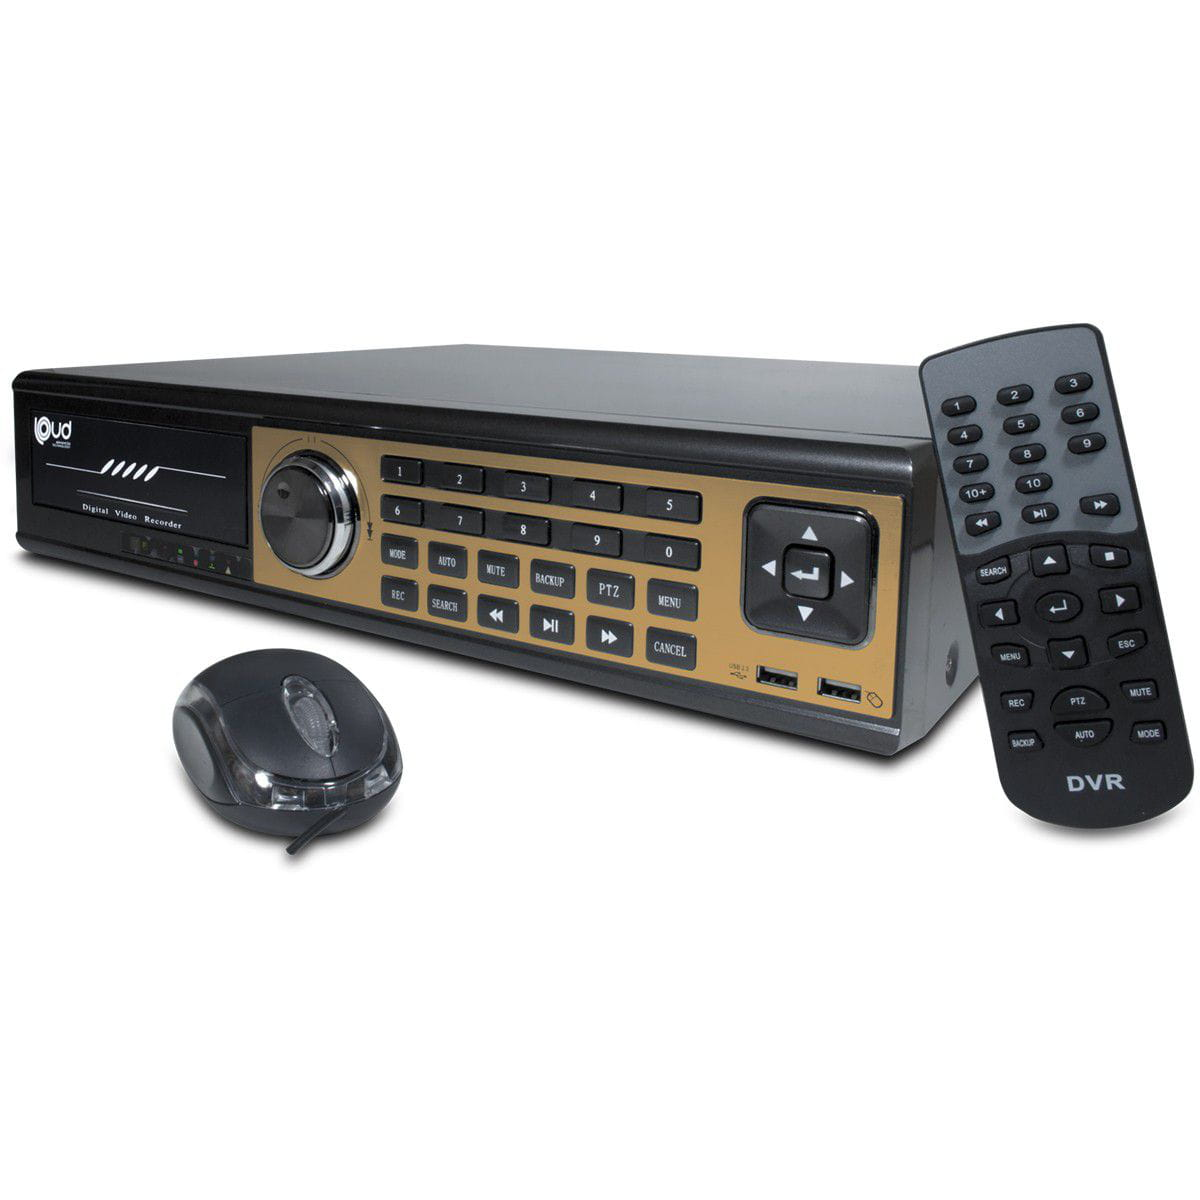 Dvr Stand Alone 24 Canais Ld2430 Loud